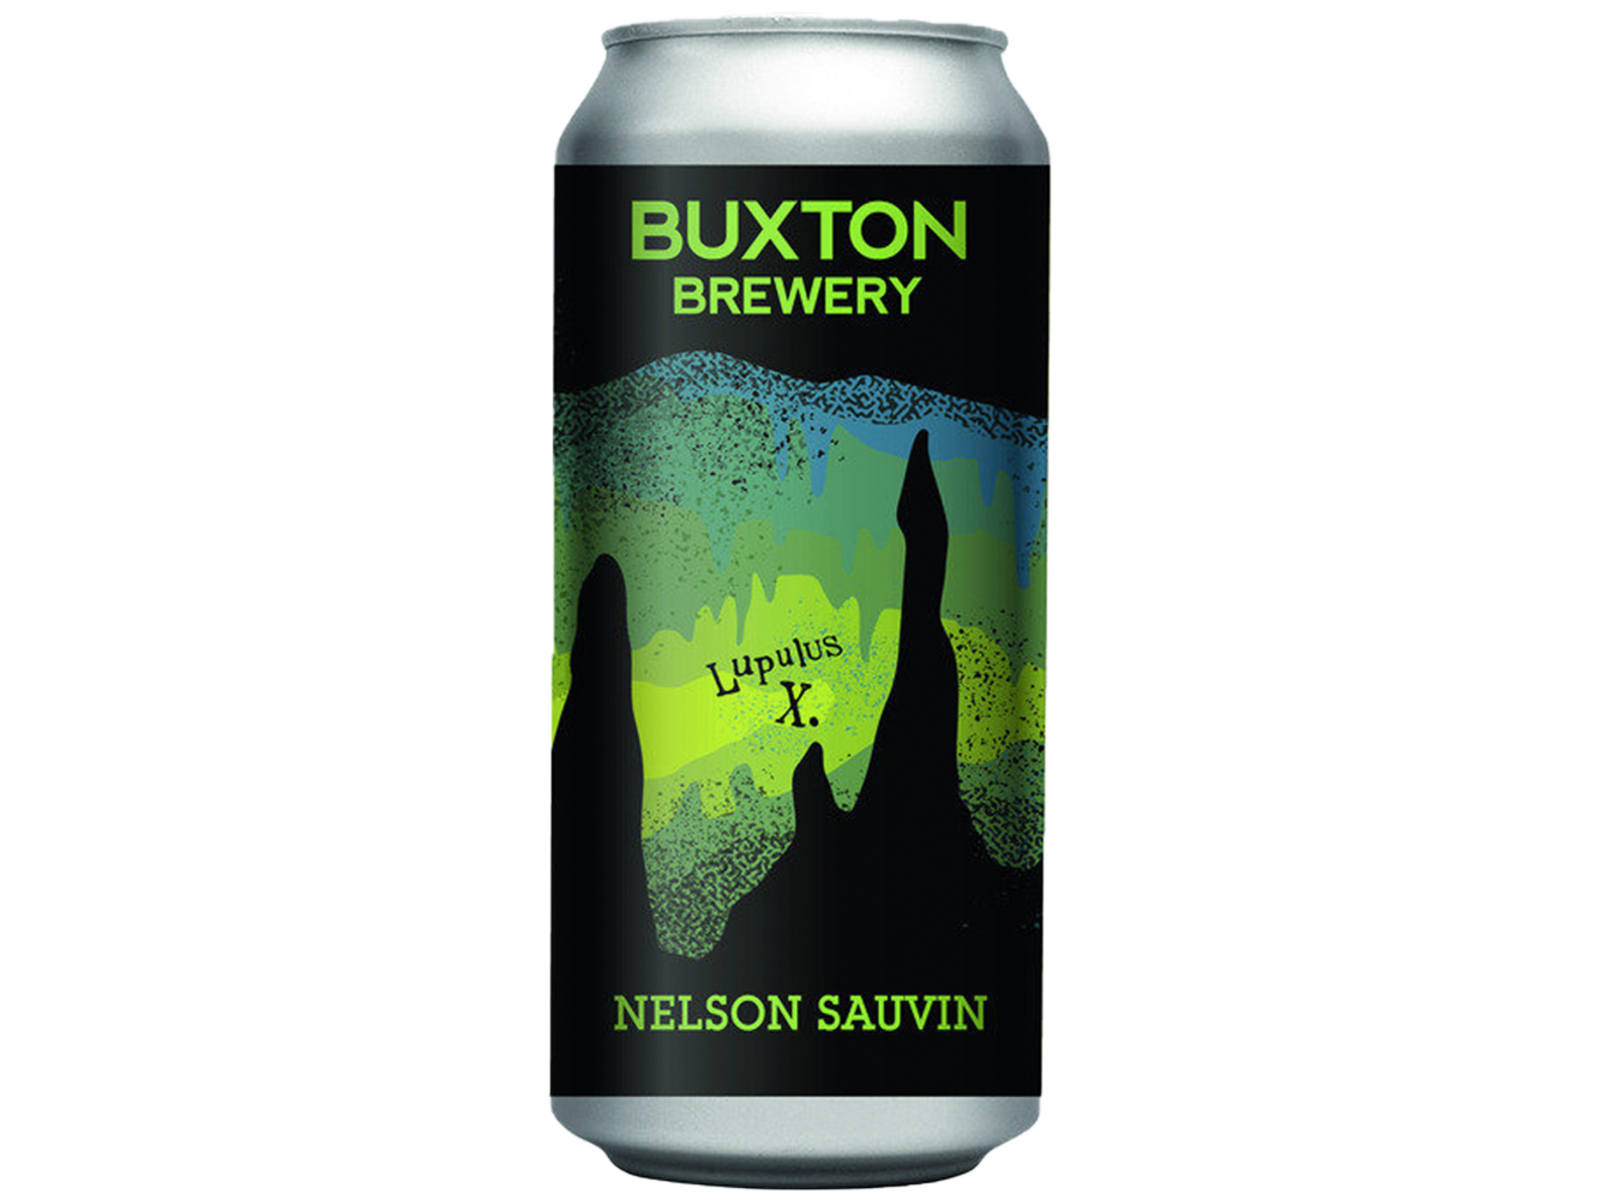 Buxton Brewery / Nelson Sauvin